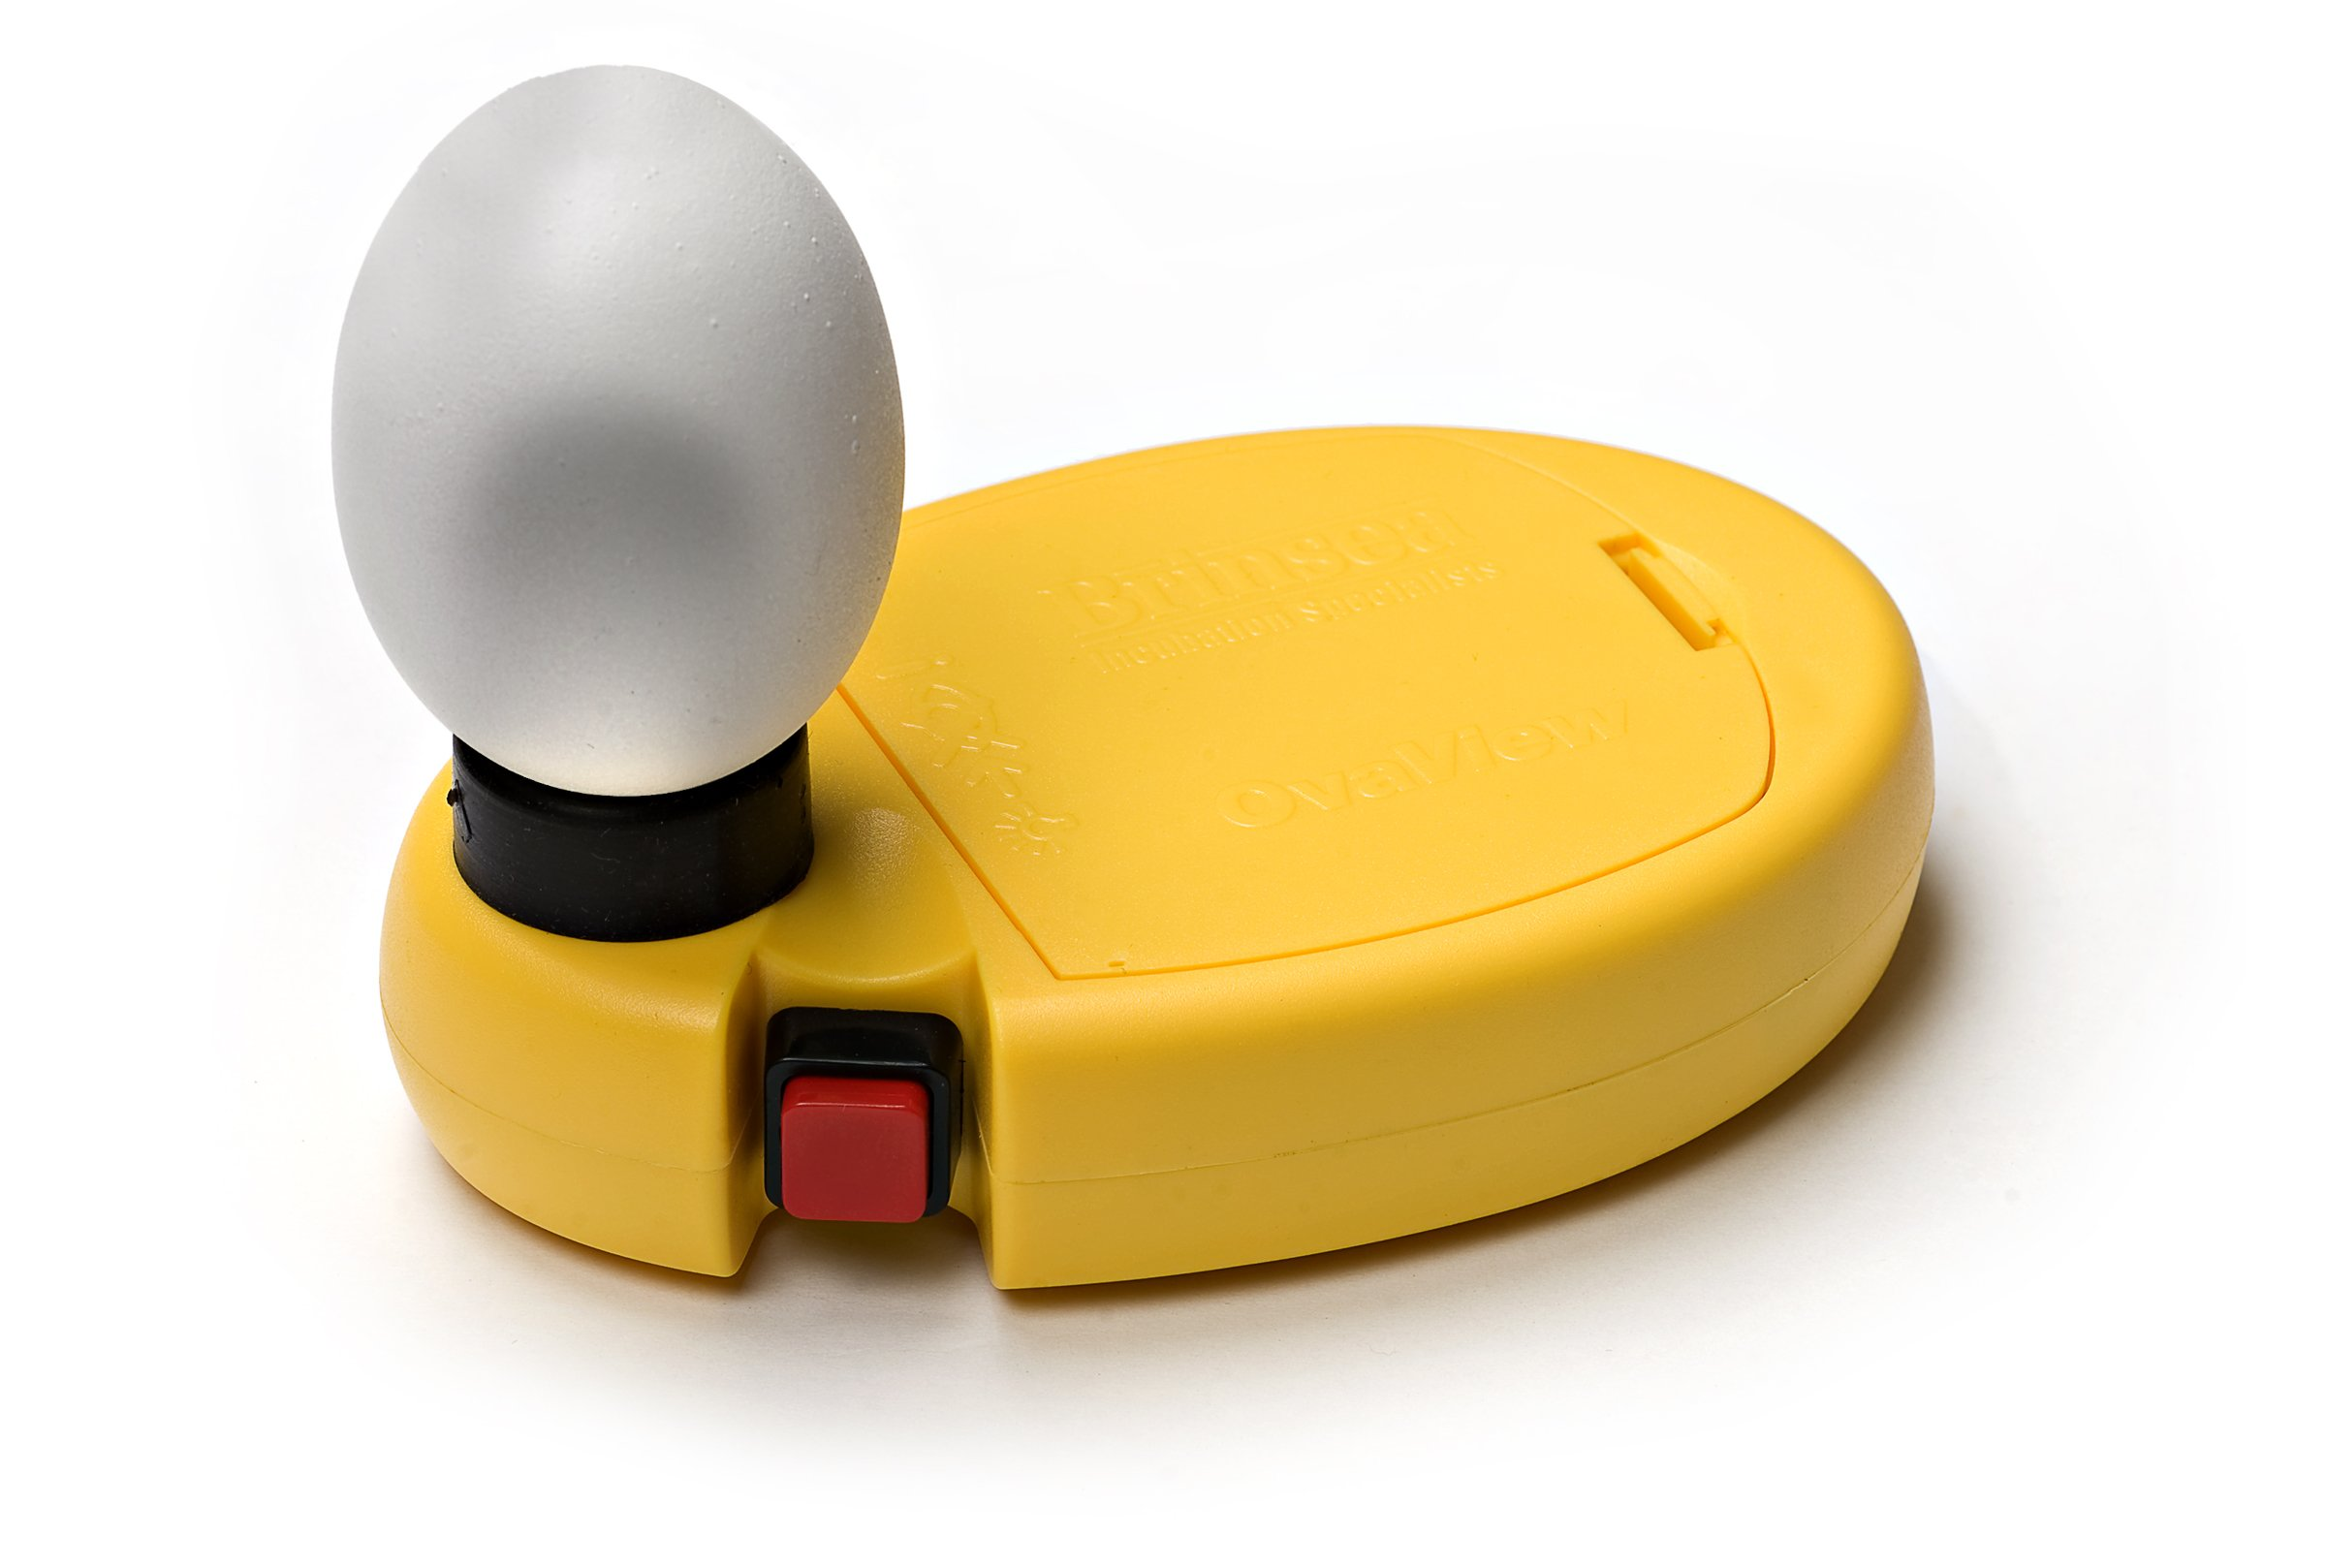 Brinsea Products Candling Lamp for Monitoring The Development of The Embryo within The Egg by Brinsea Products